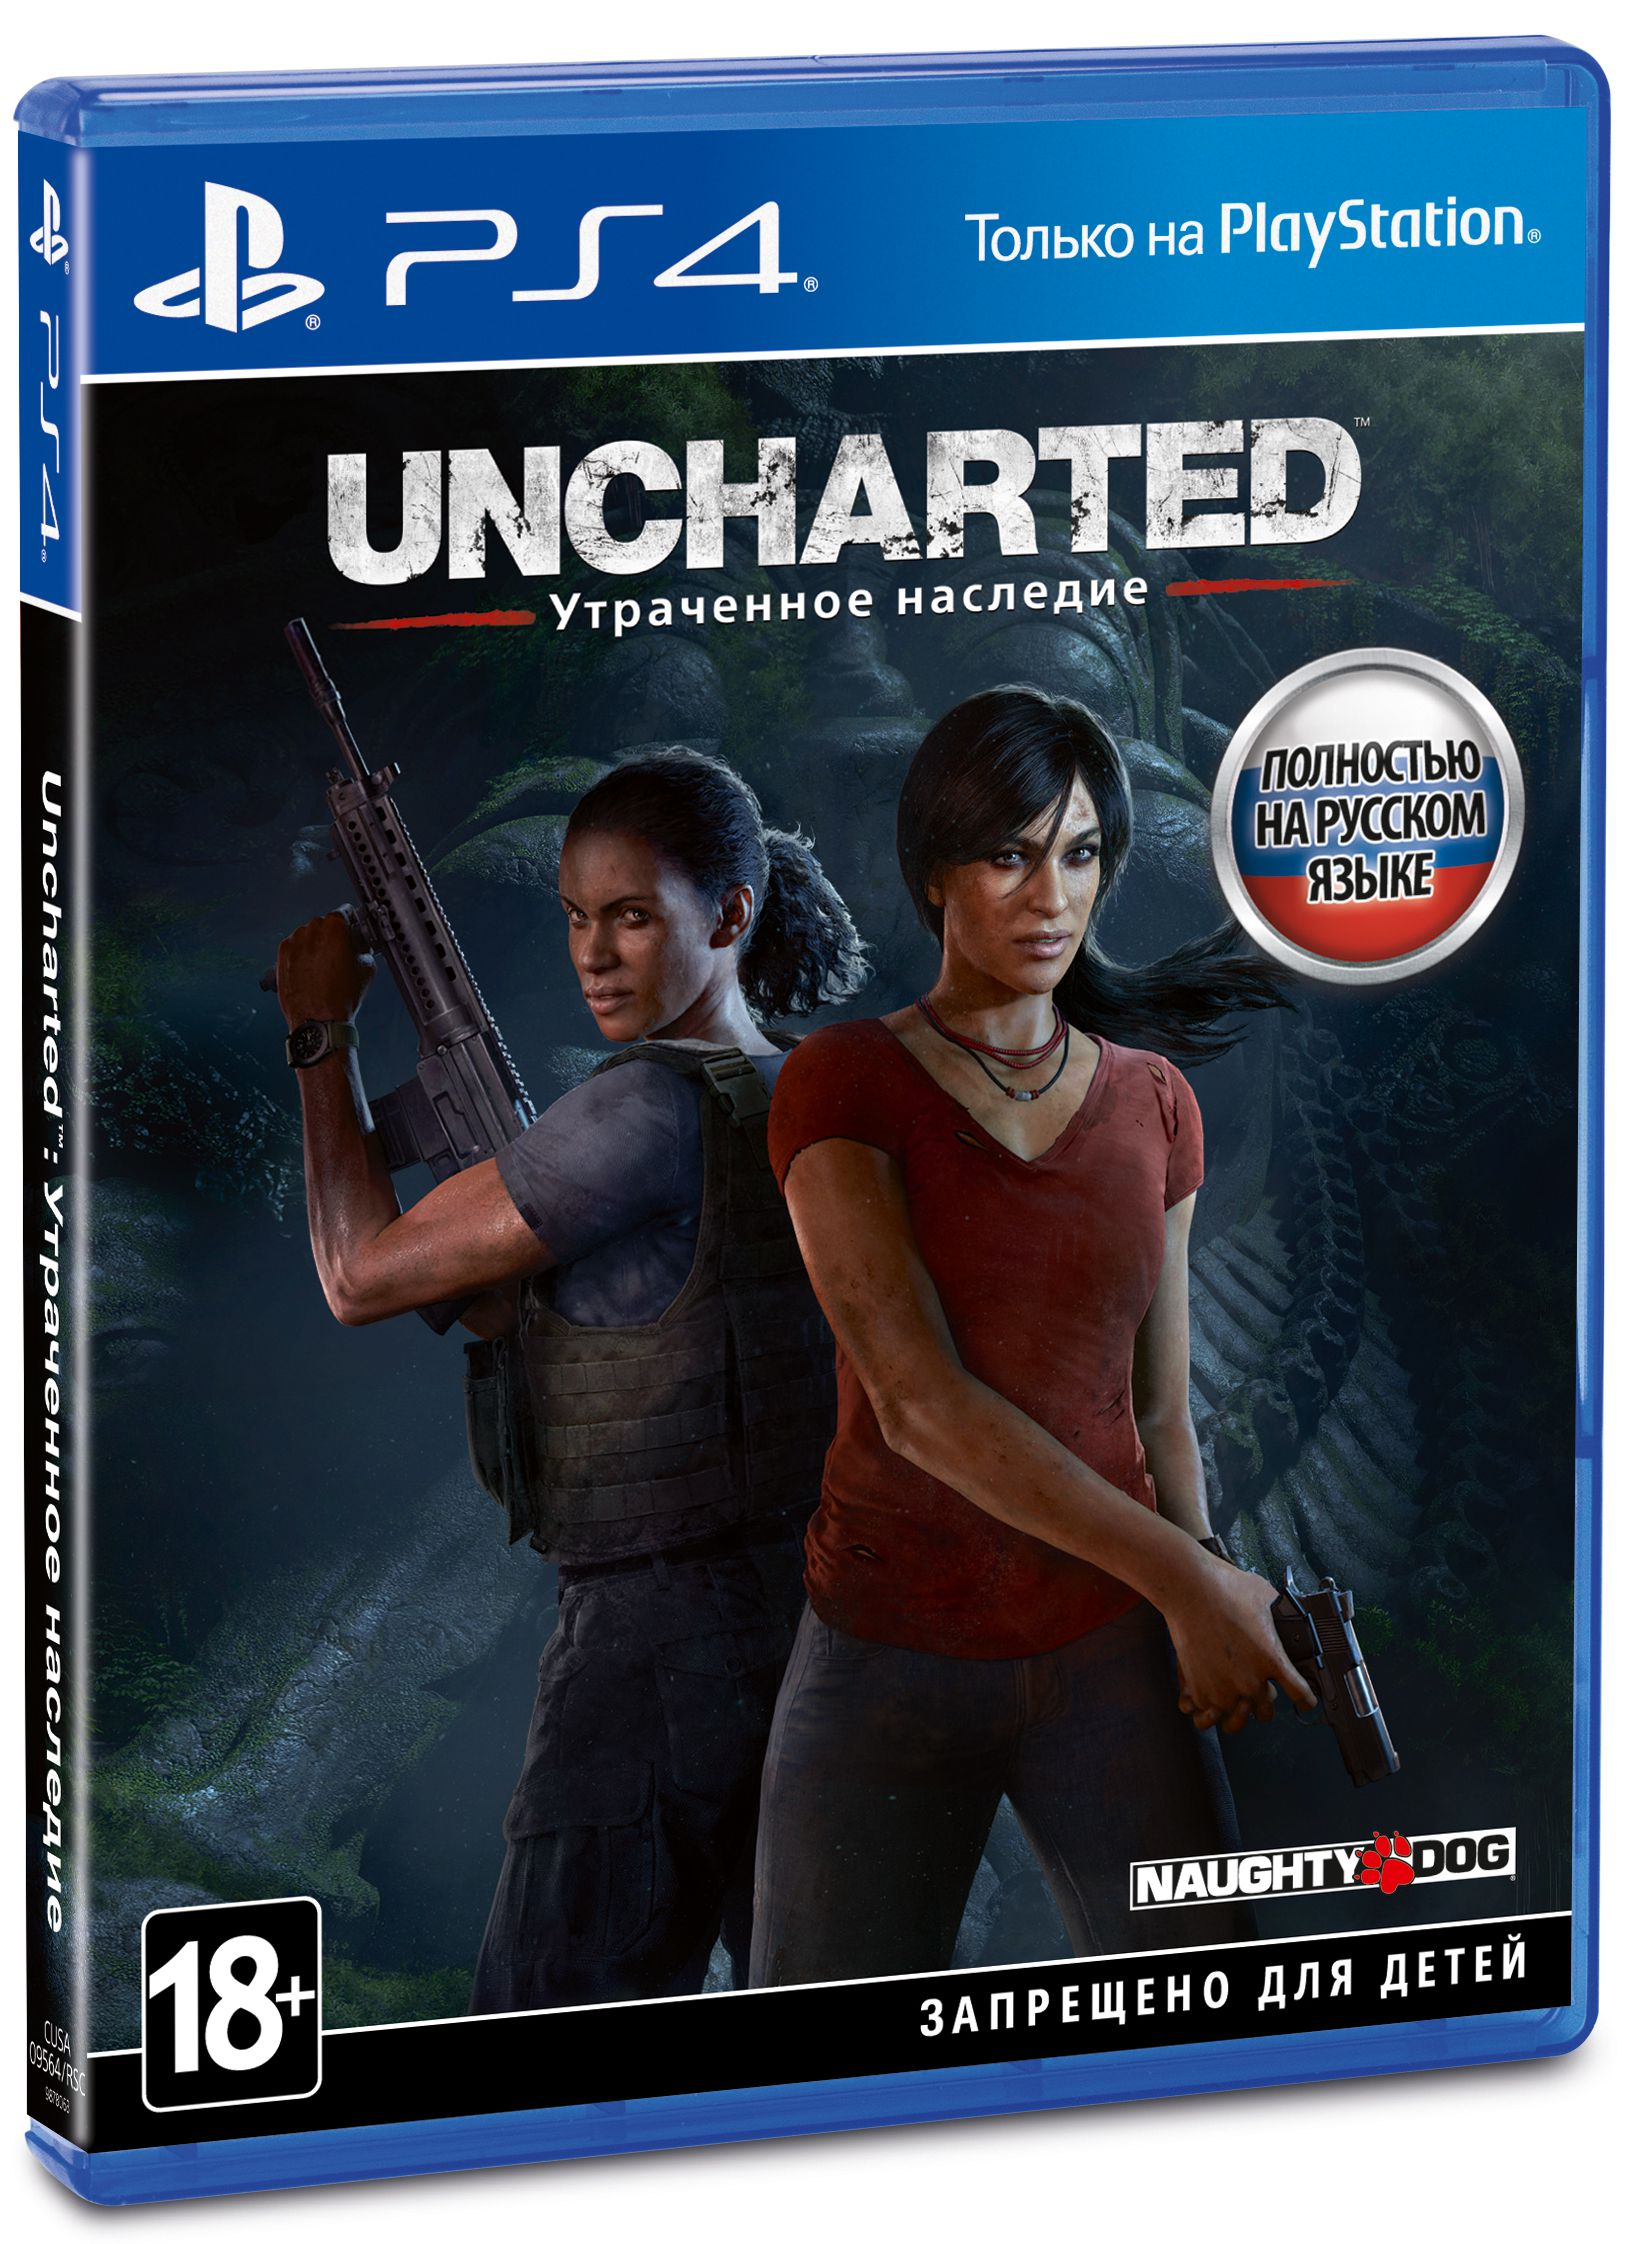 Uncharted: Утраченное наследие (The Lost Legacy) [PS4] uncharted 4 путь вора игра для ps4